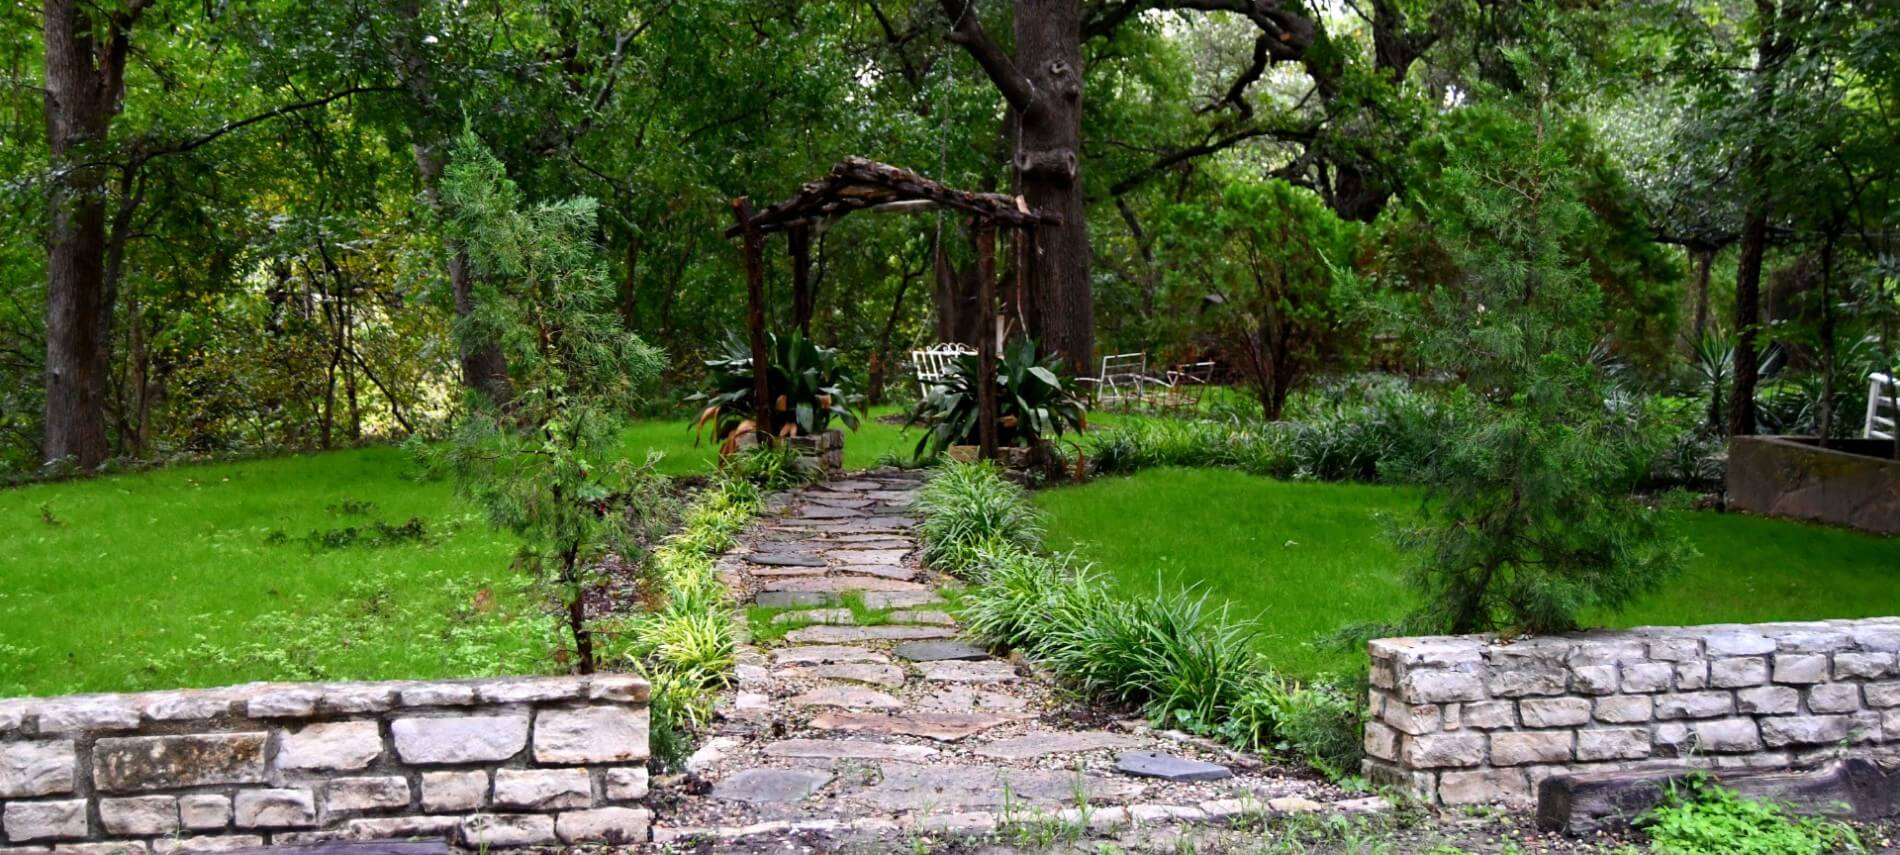 Stone wall and path leading to a wooden swing in a green area.